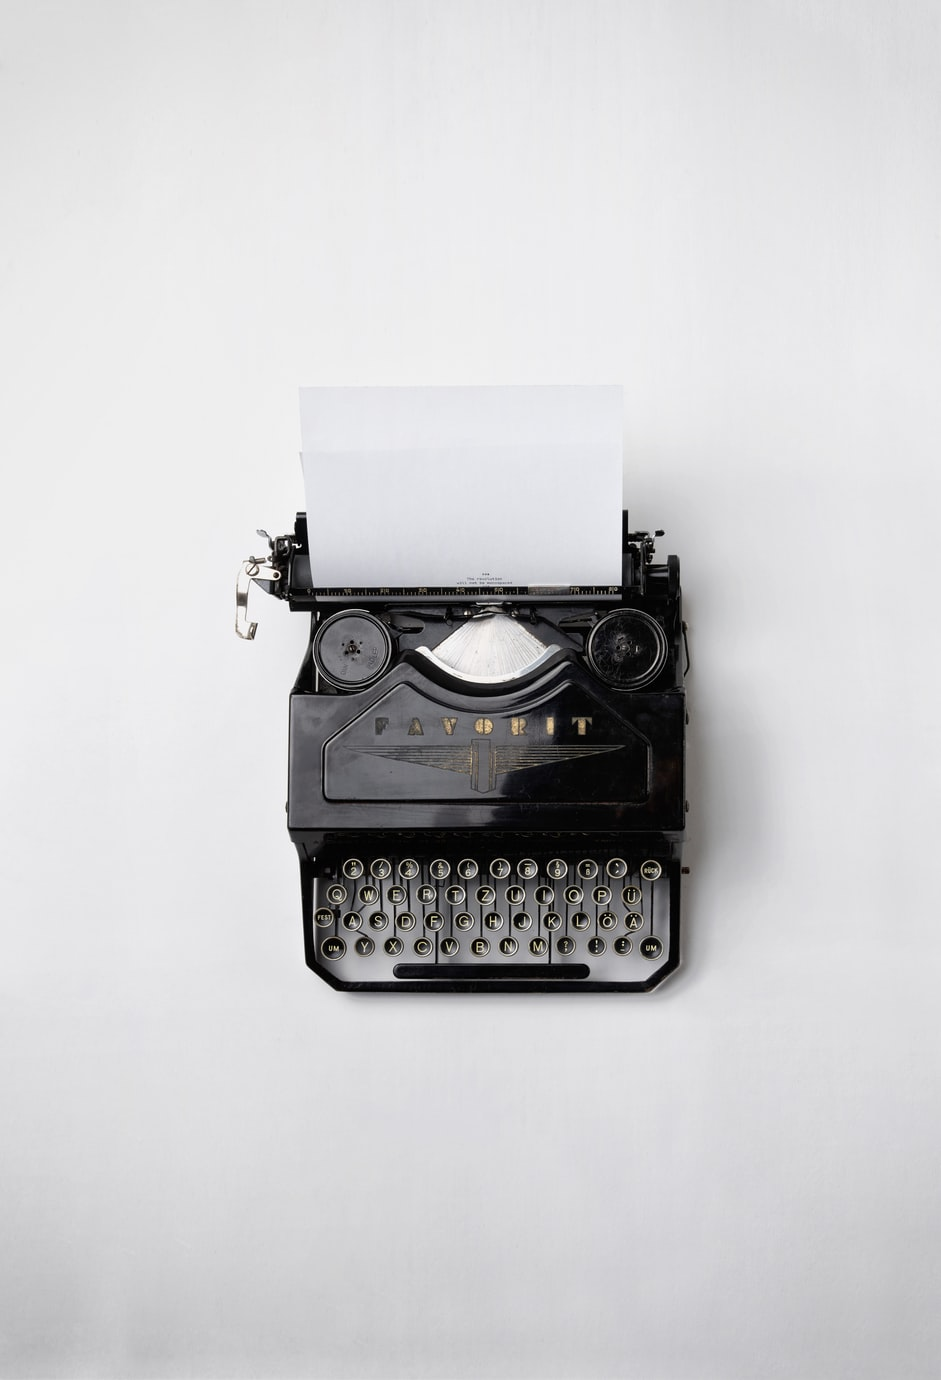 An image of a typewriter on the Contact page